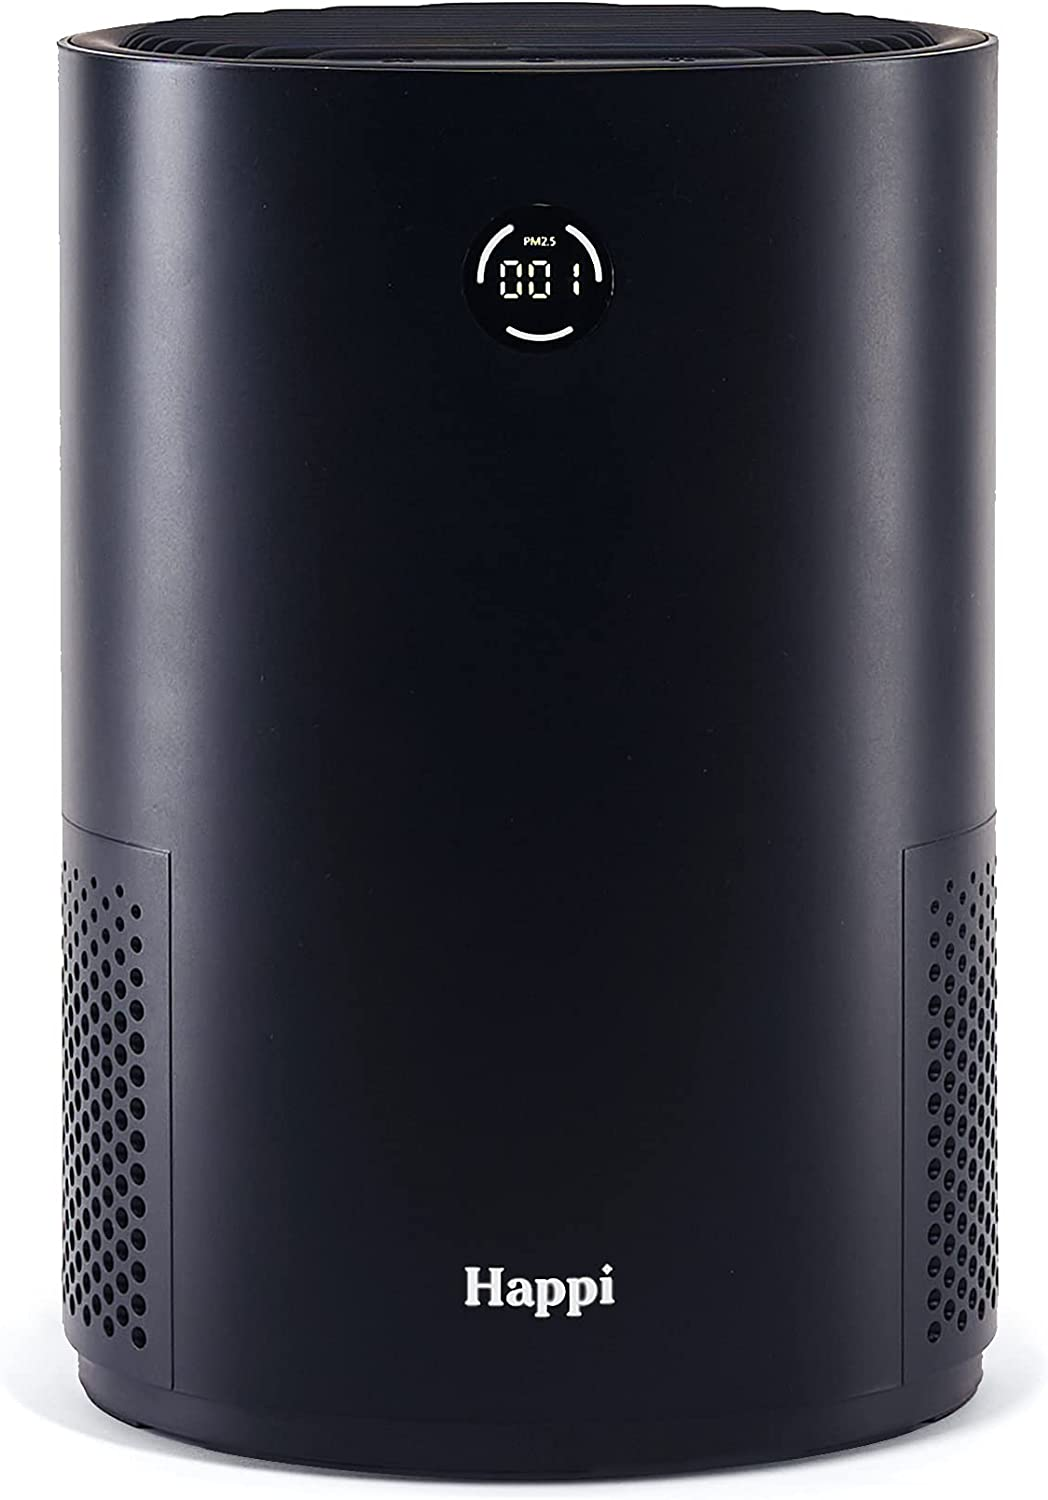 My Happi Compact Air Purifier H13 True UV filter in 5 Max 64% OFF HEPA Now free shipping 1